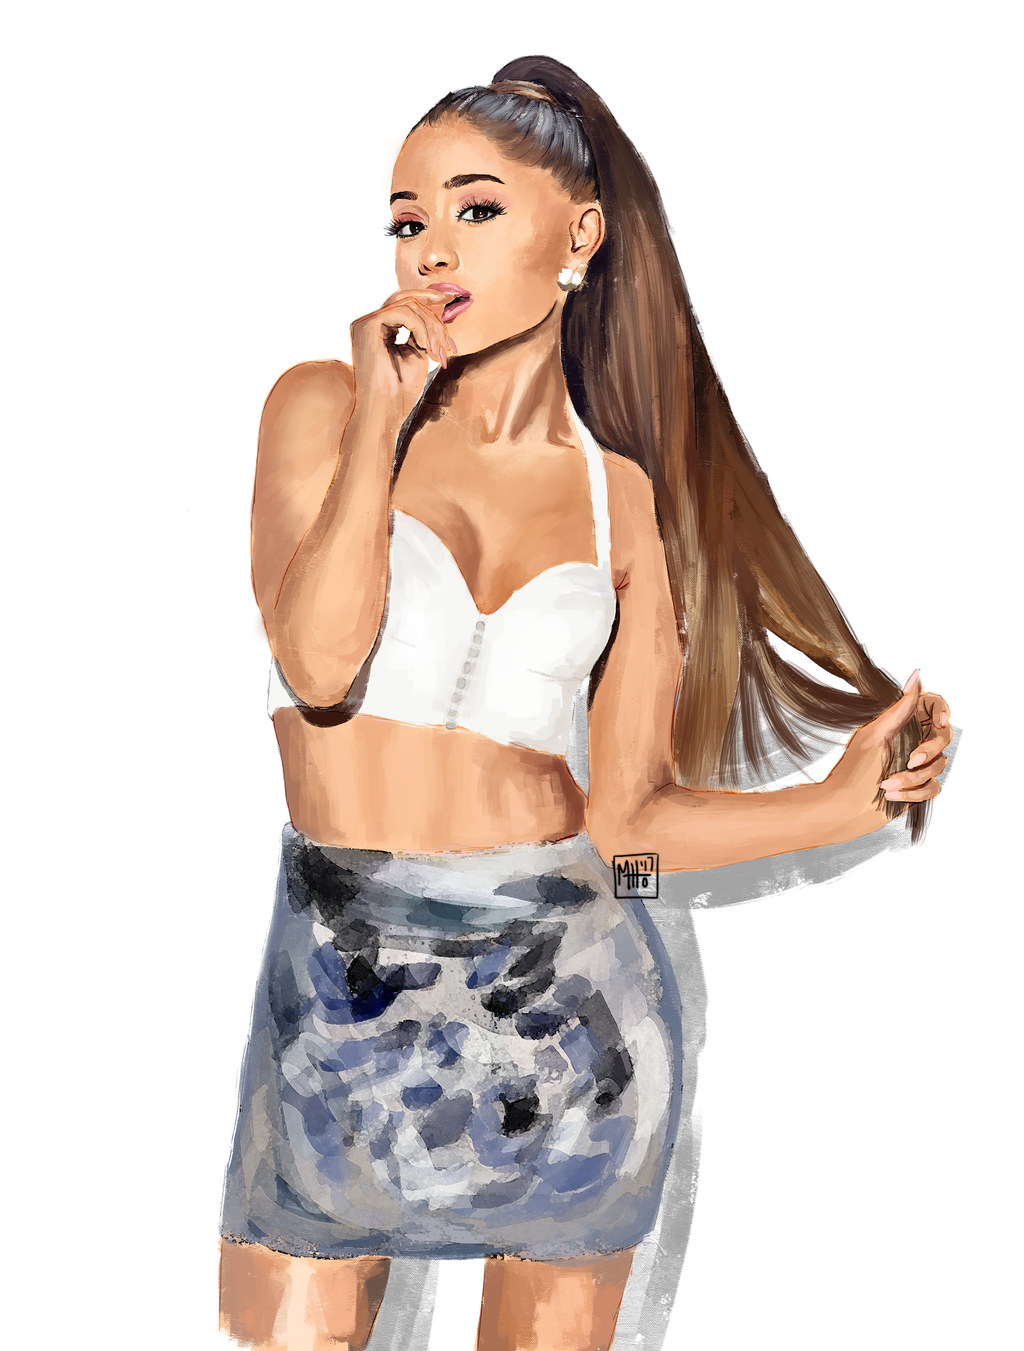 Ariana grande by SHAKEitup1 on DeviantArt